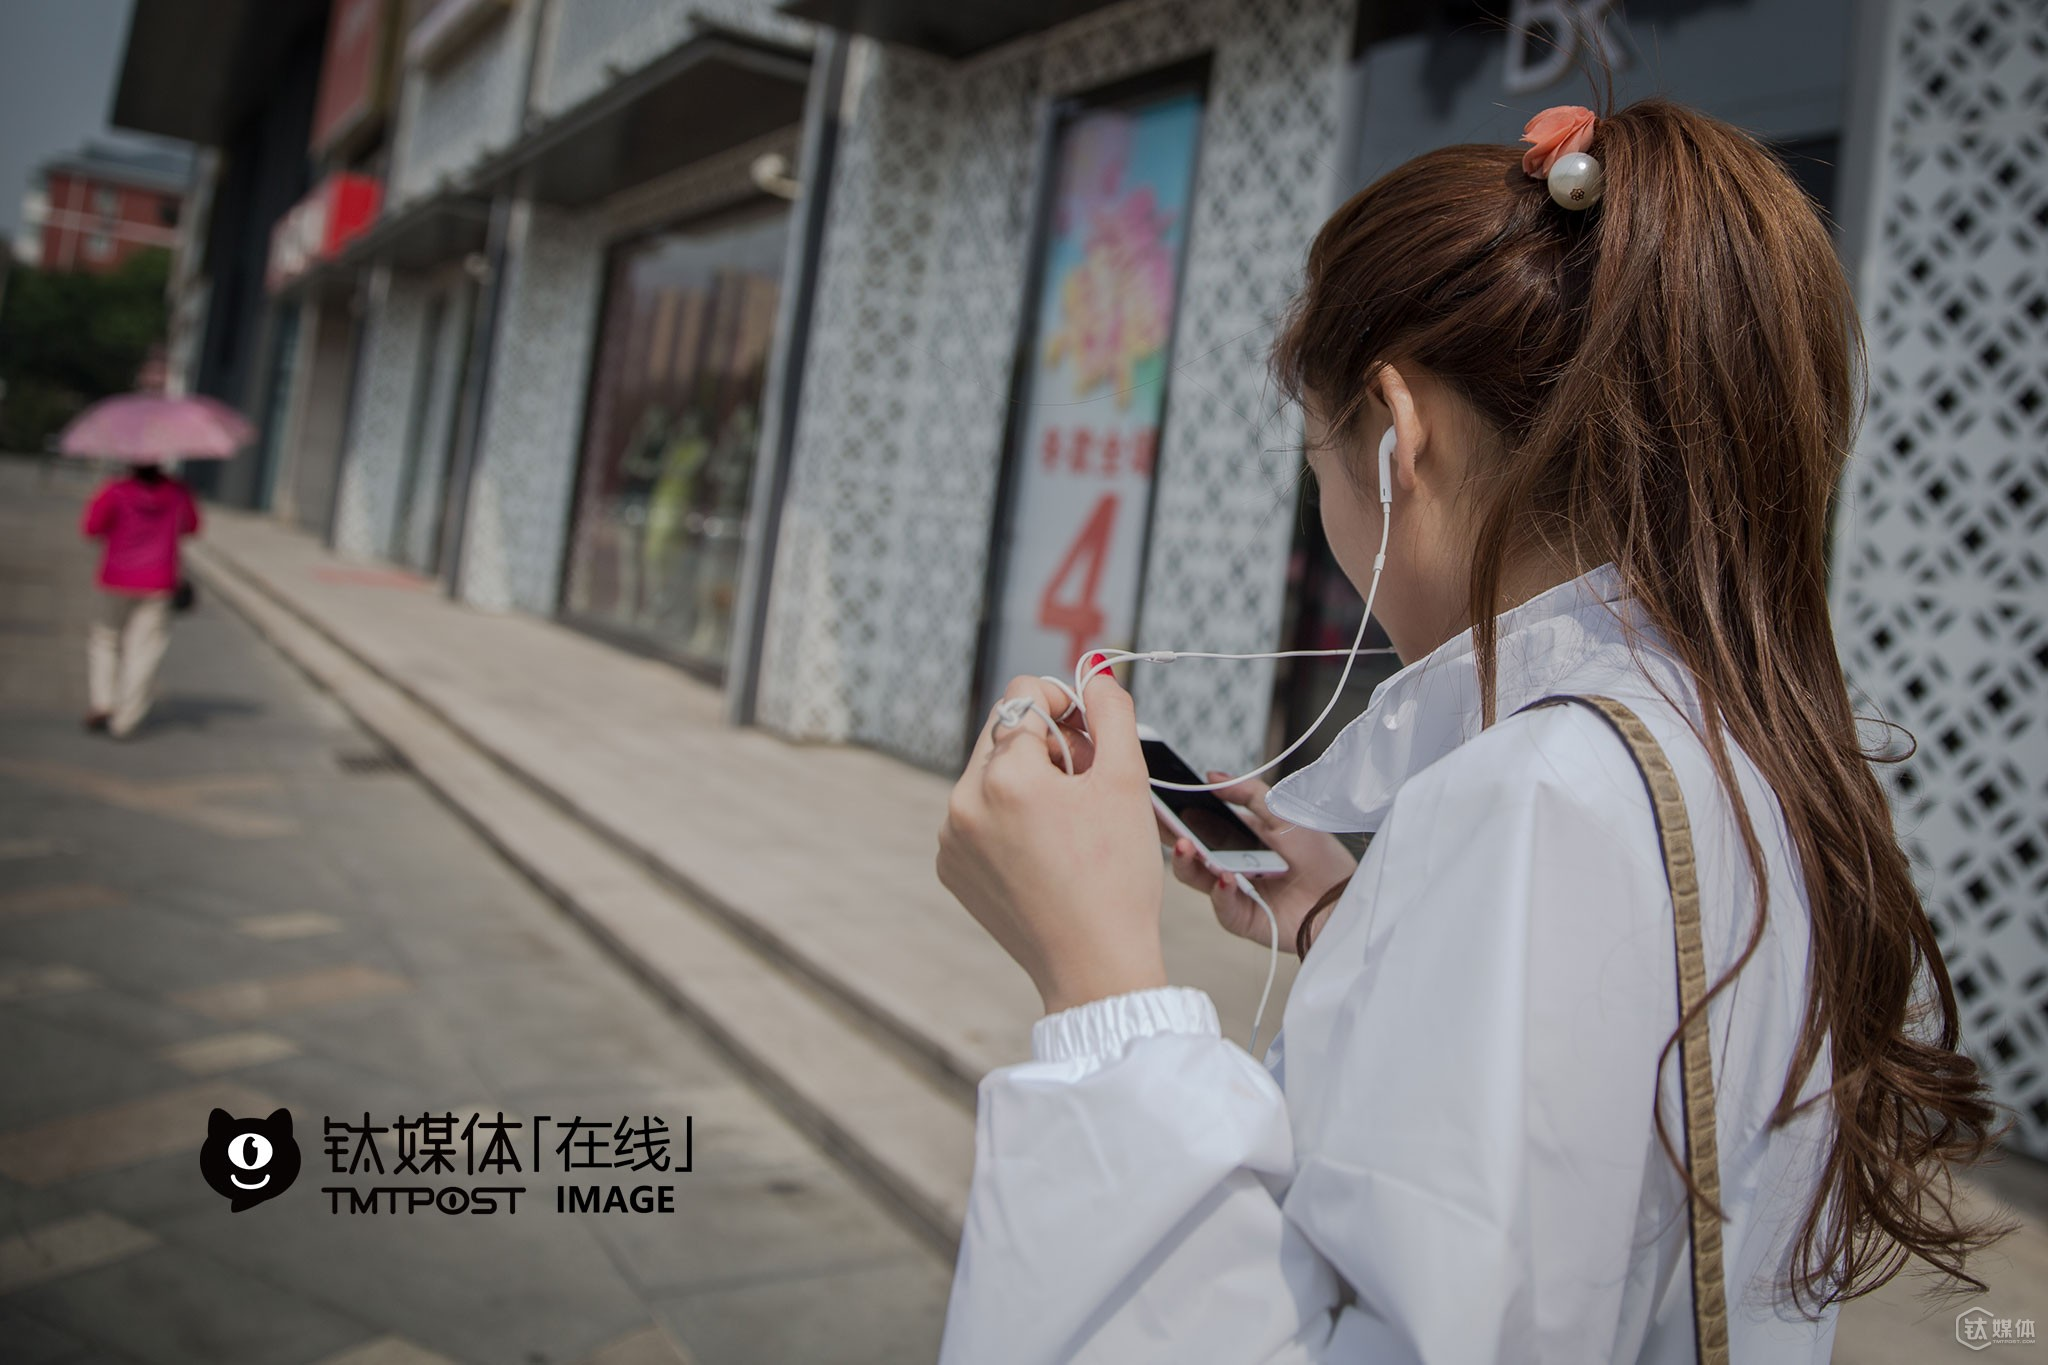 Two months ago, Youbao saw a friend of her share a live video in her WeChat friends circle and found it interesting. Some of her friends convinced her, so she decided to give a try. However, after she became hit once, she couldn't stop. Now, she would live broadcast videos almost anytime and anywhere. Wake up and do make-up, go out and wash her hair, see some friends, play games in cyber bars, watch TV at home, have lunch, walk in the street… As long as she stops, her fans would ask her why and push her to continue. Up till May, she's already had over 120,000 fans on Inke TV, one of the major live video broadcasting platforms in China. On average, she has as many as 9,000 fans watching her live broadcast videos every day at the same time.